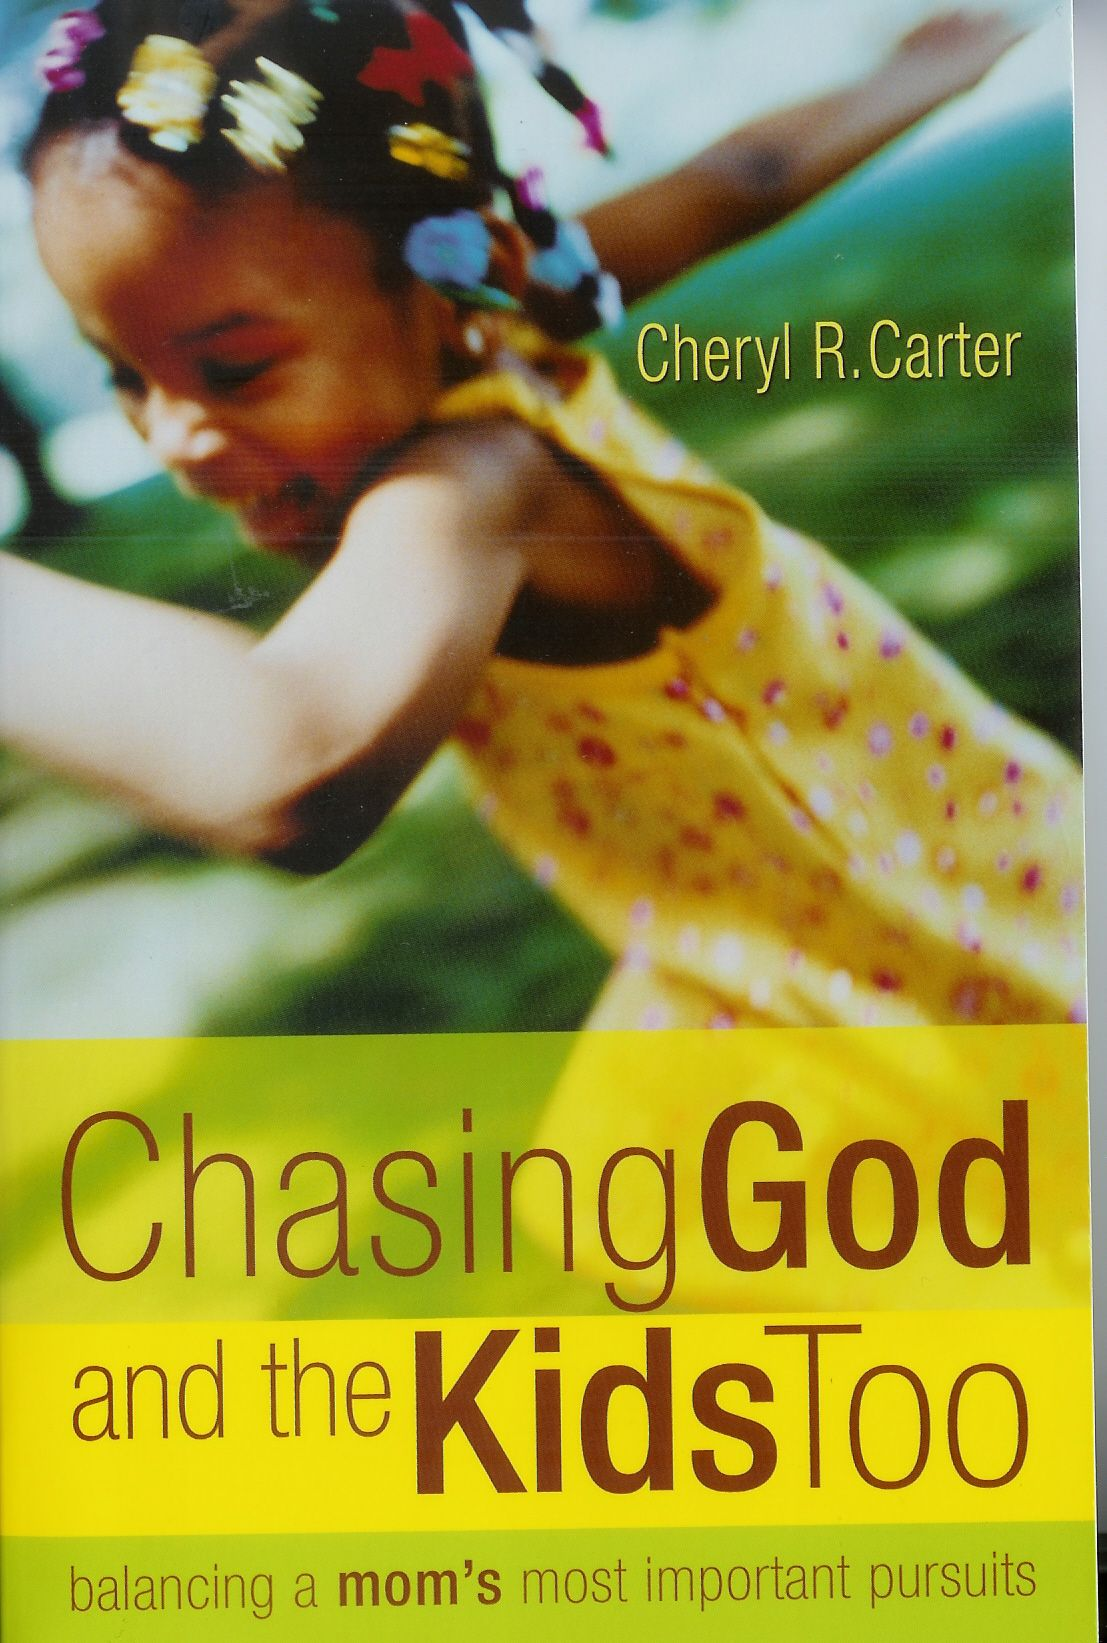 Chasing God and the Kids too, Cheryl Carter